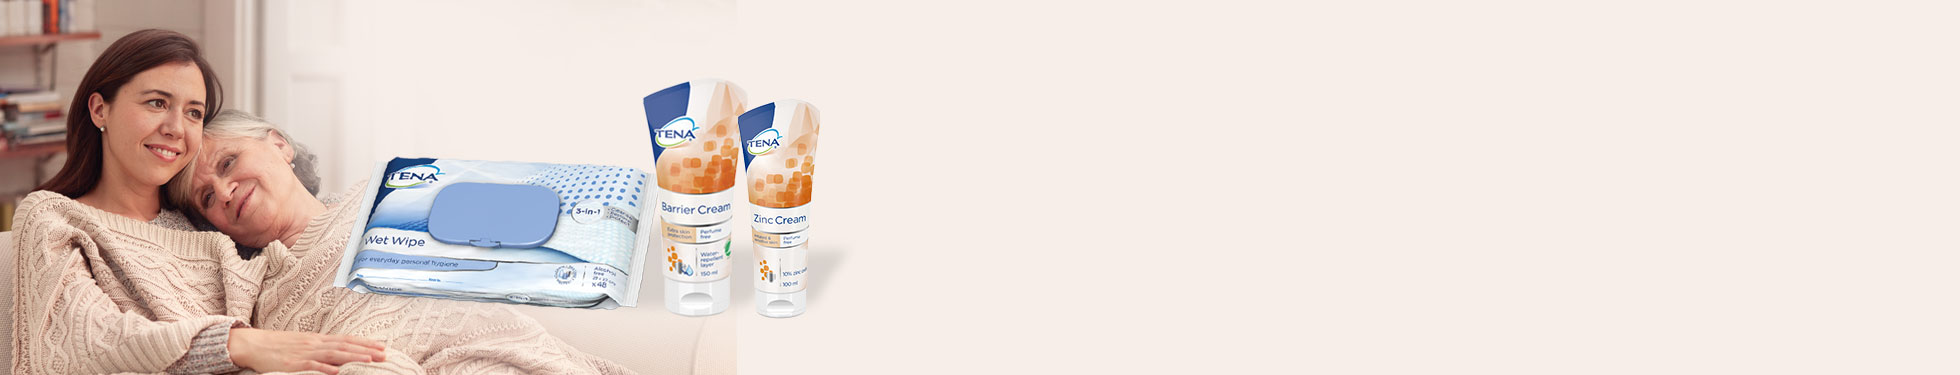 PL_TENA SKin Care sample order_banner_1960x375.jpg